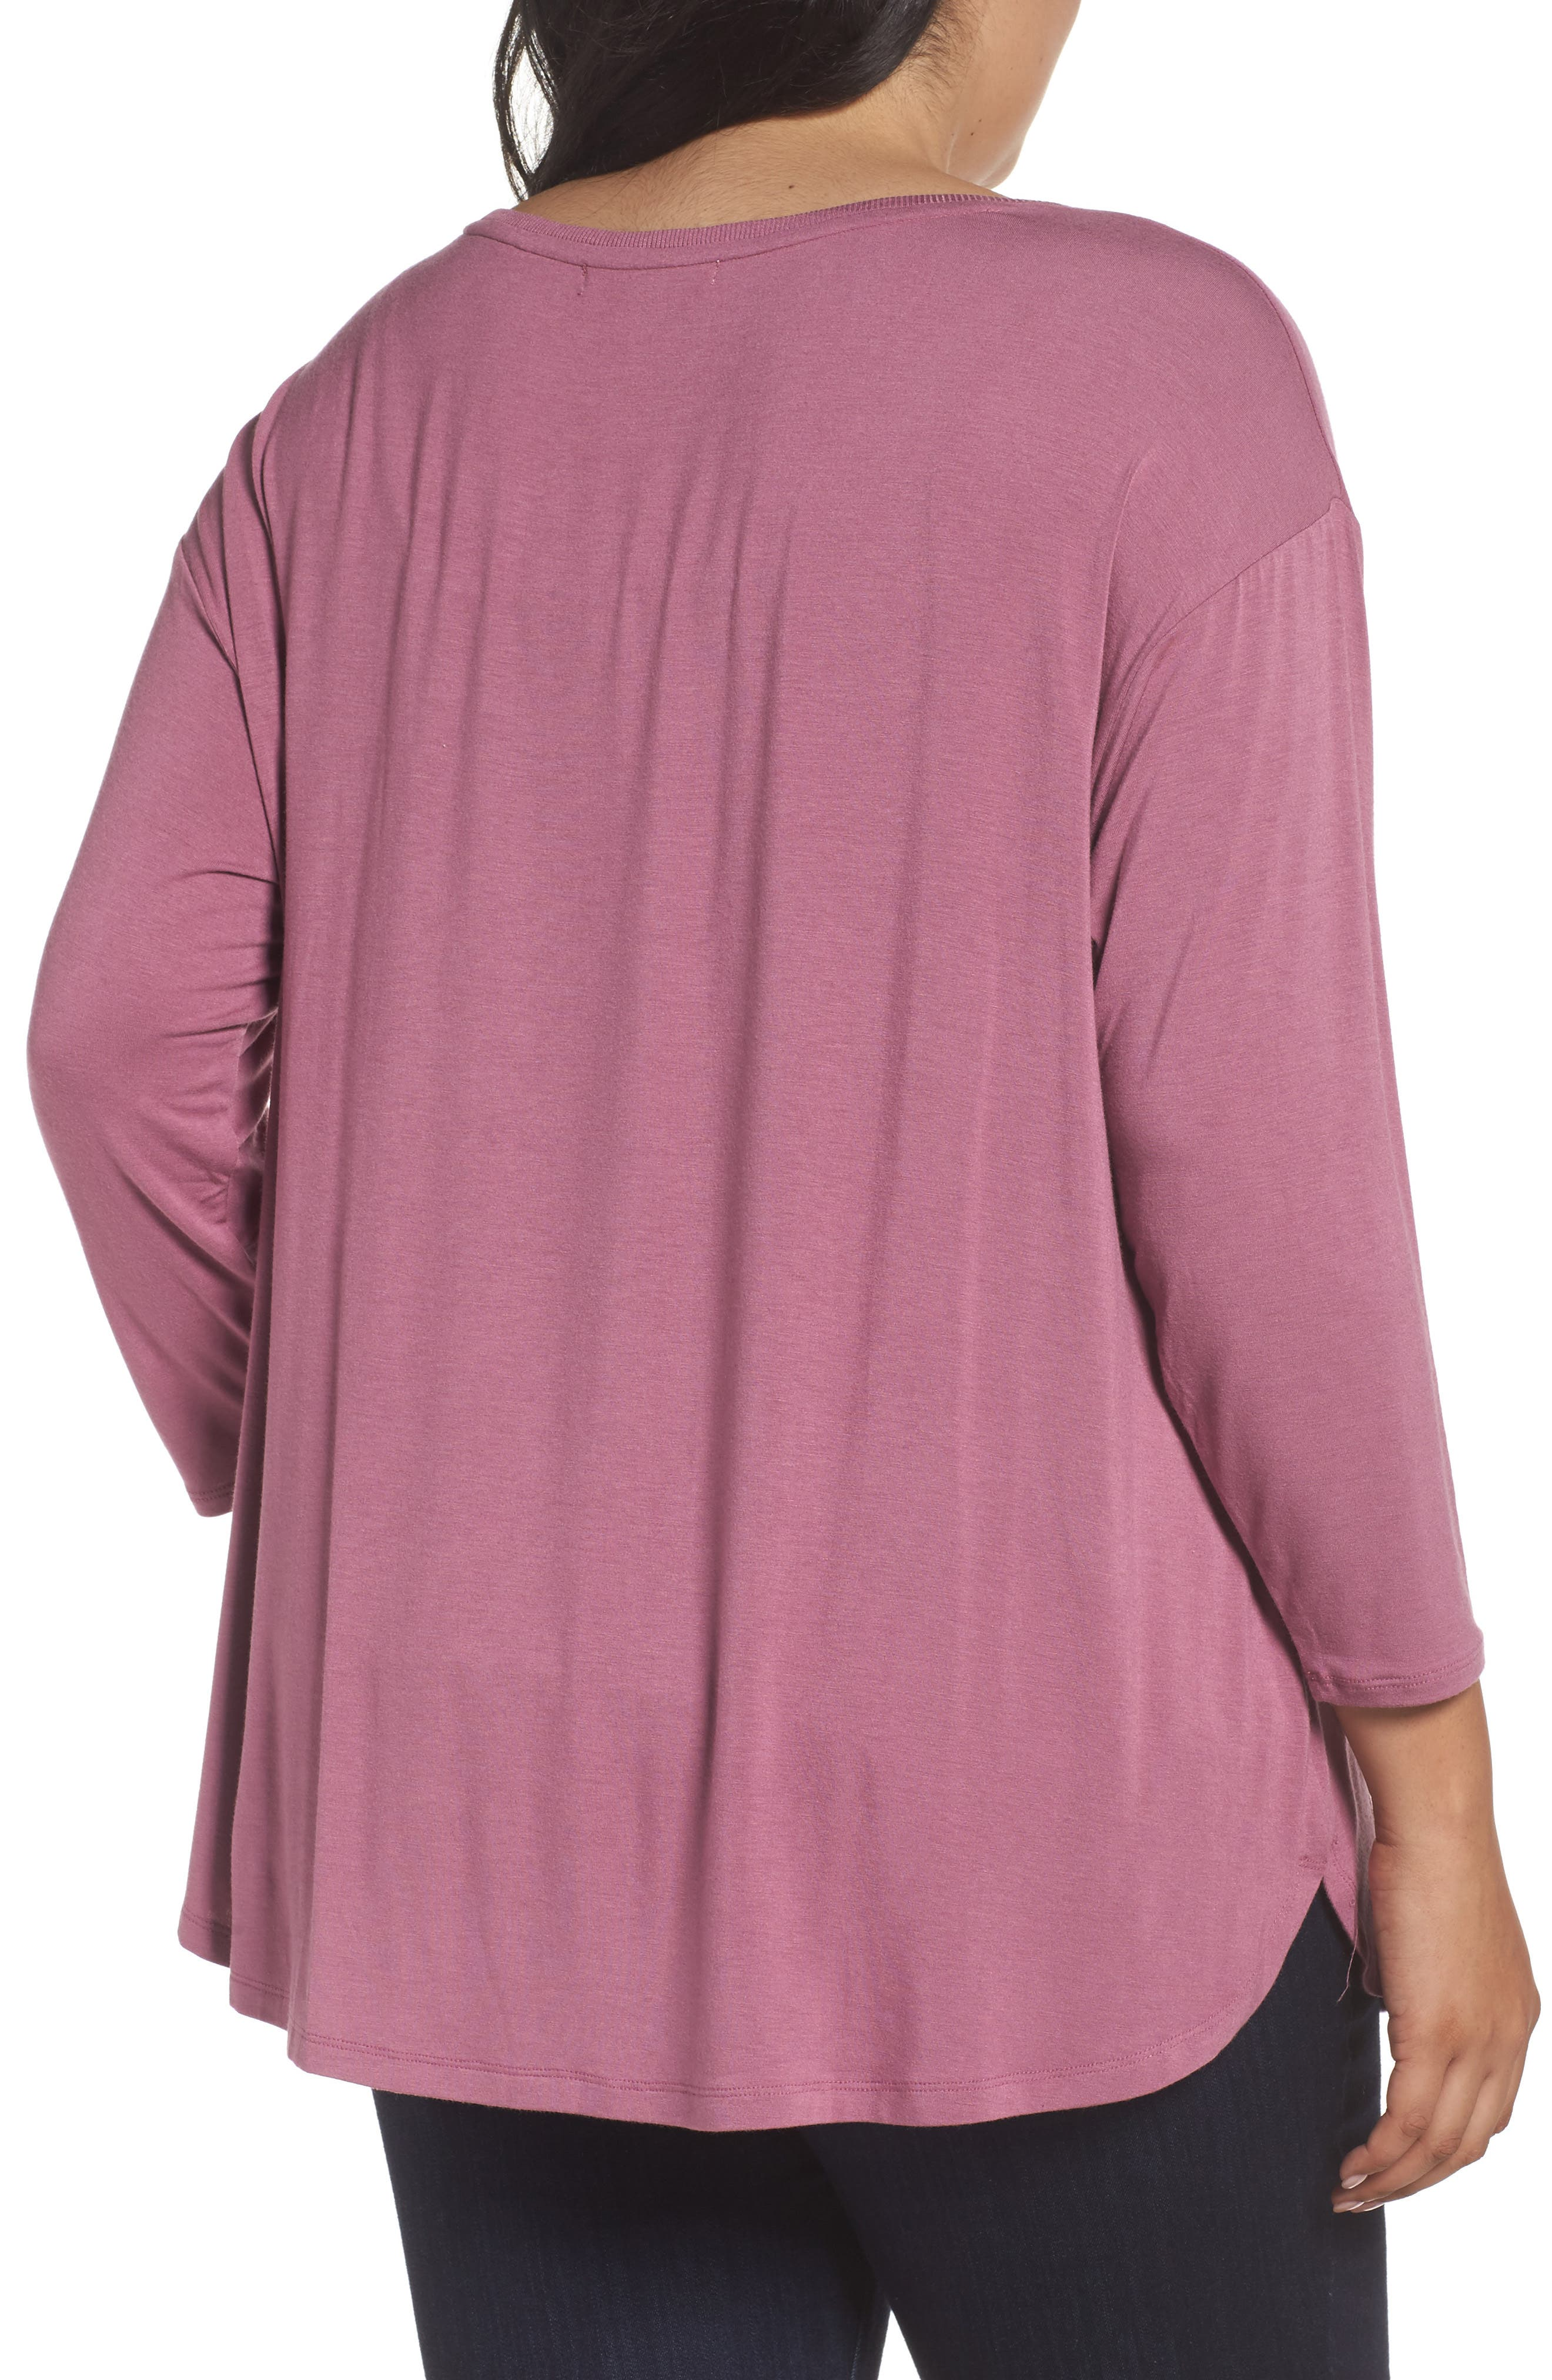 Scoop Neck Tee,                             Alternate thumbnail 2, color,                             Purple Syrup